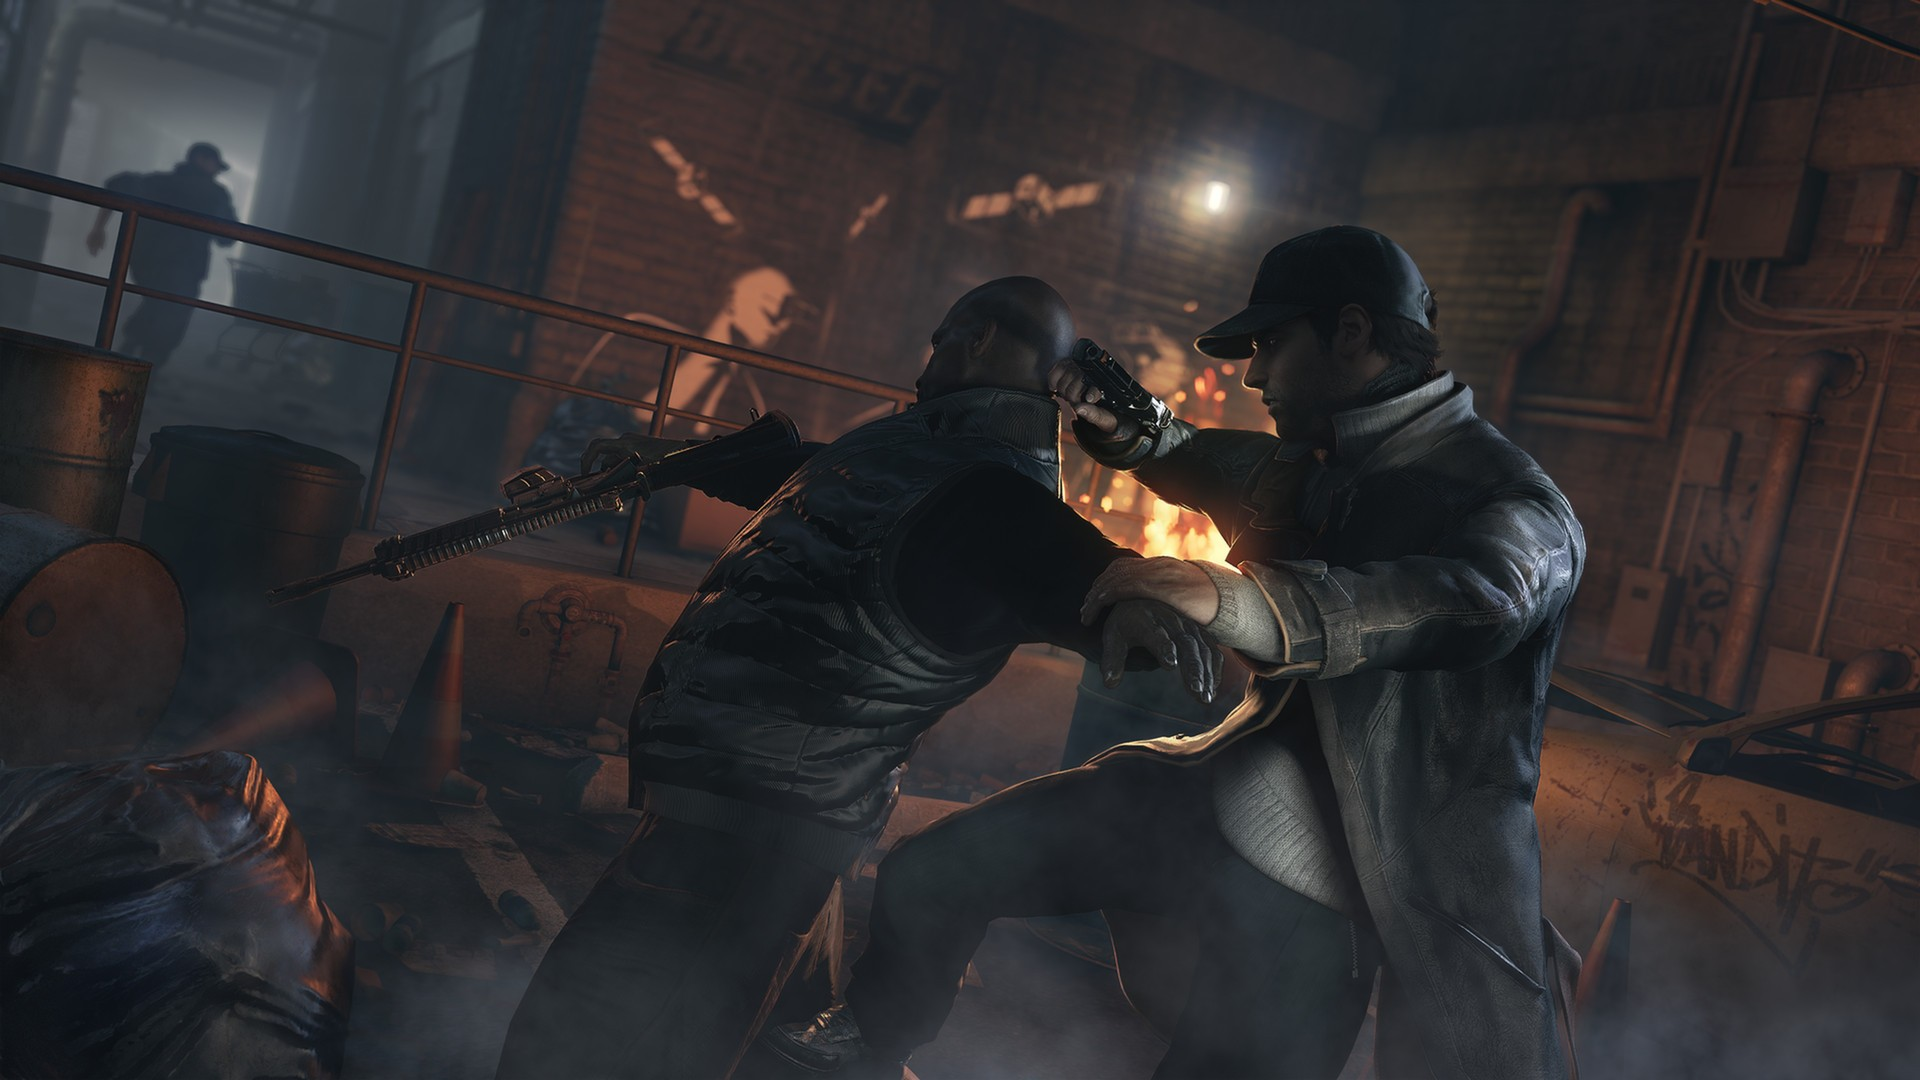 Watch Dogs PC Patch Coming Soon to Fix Problems, Ubisoft